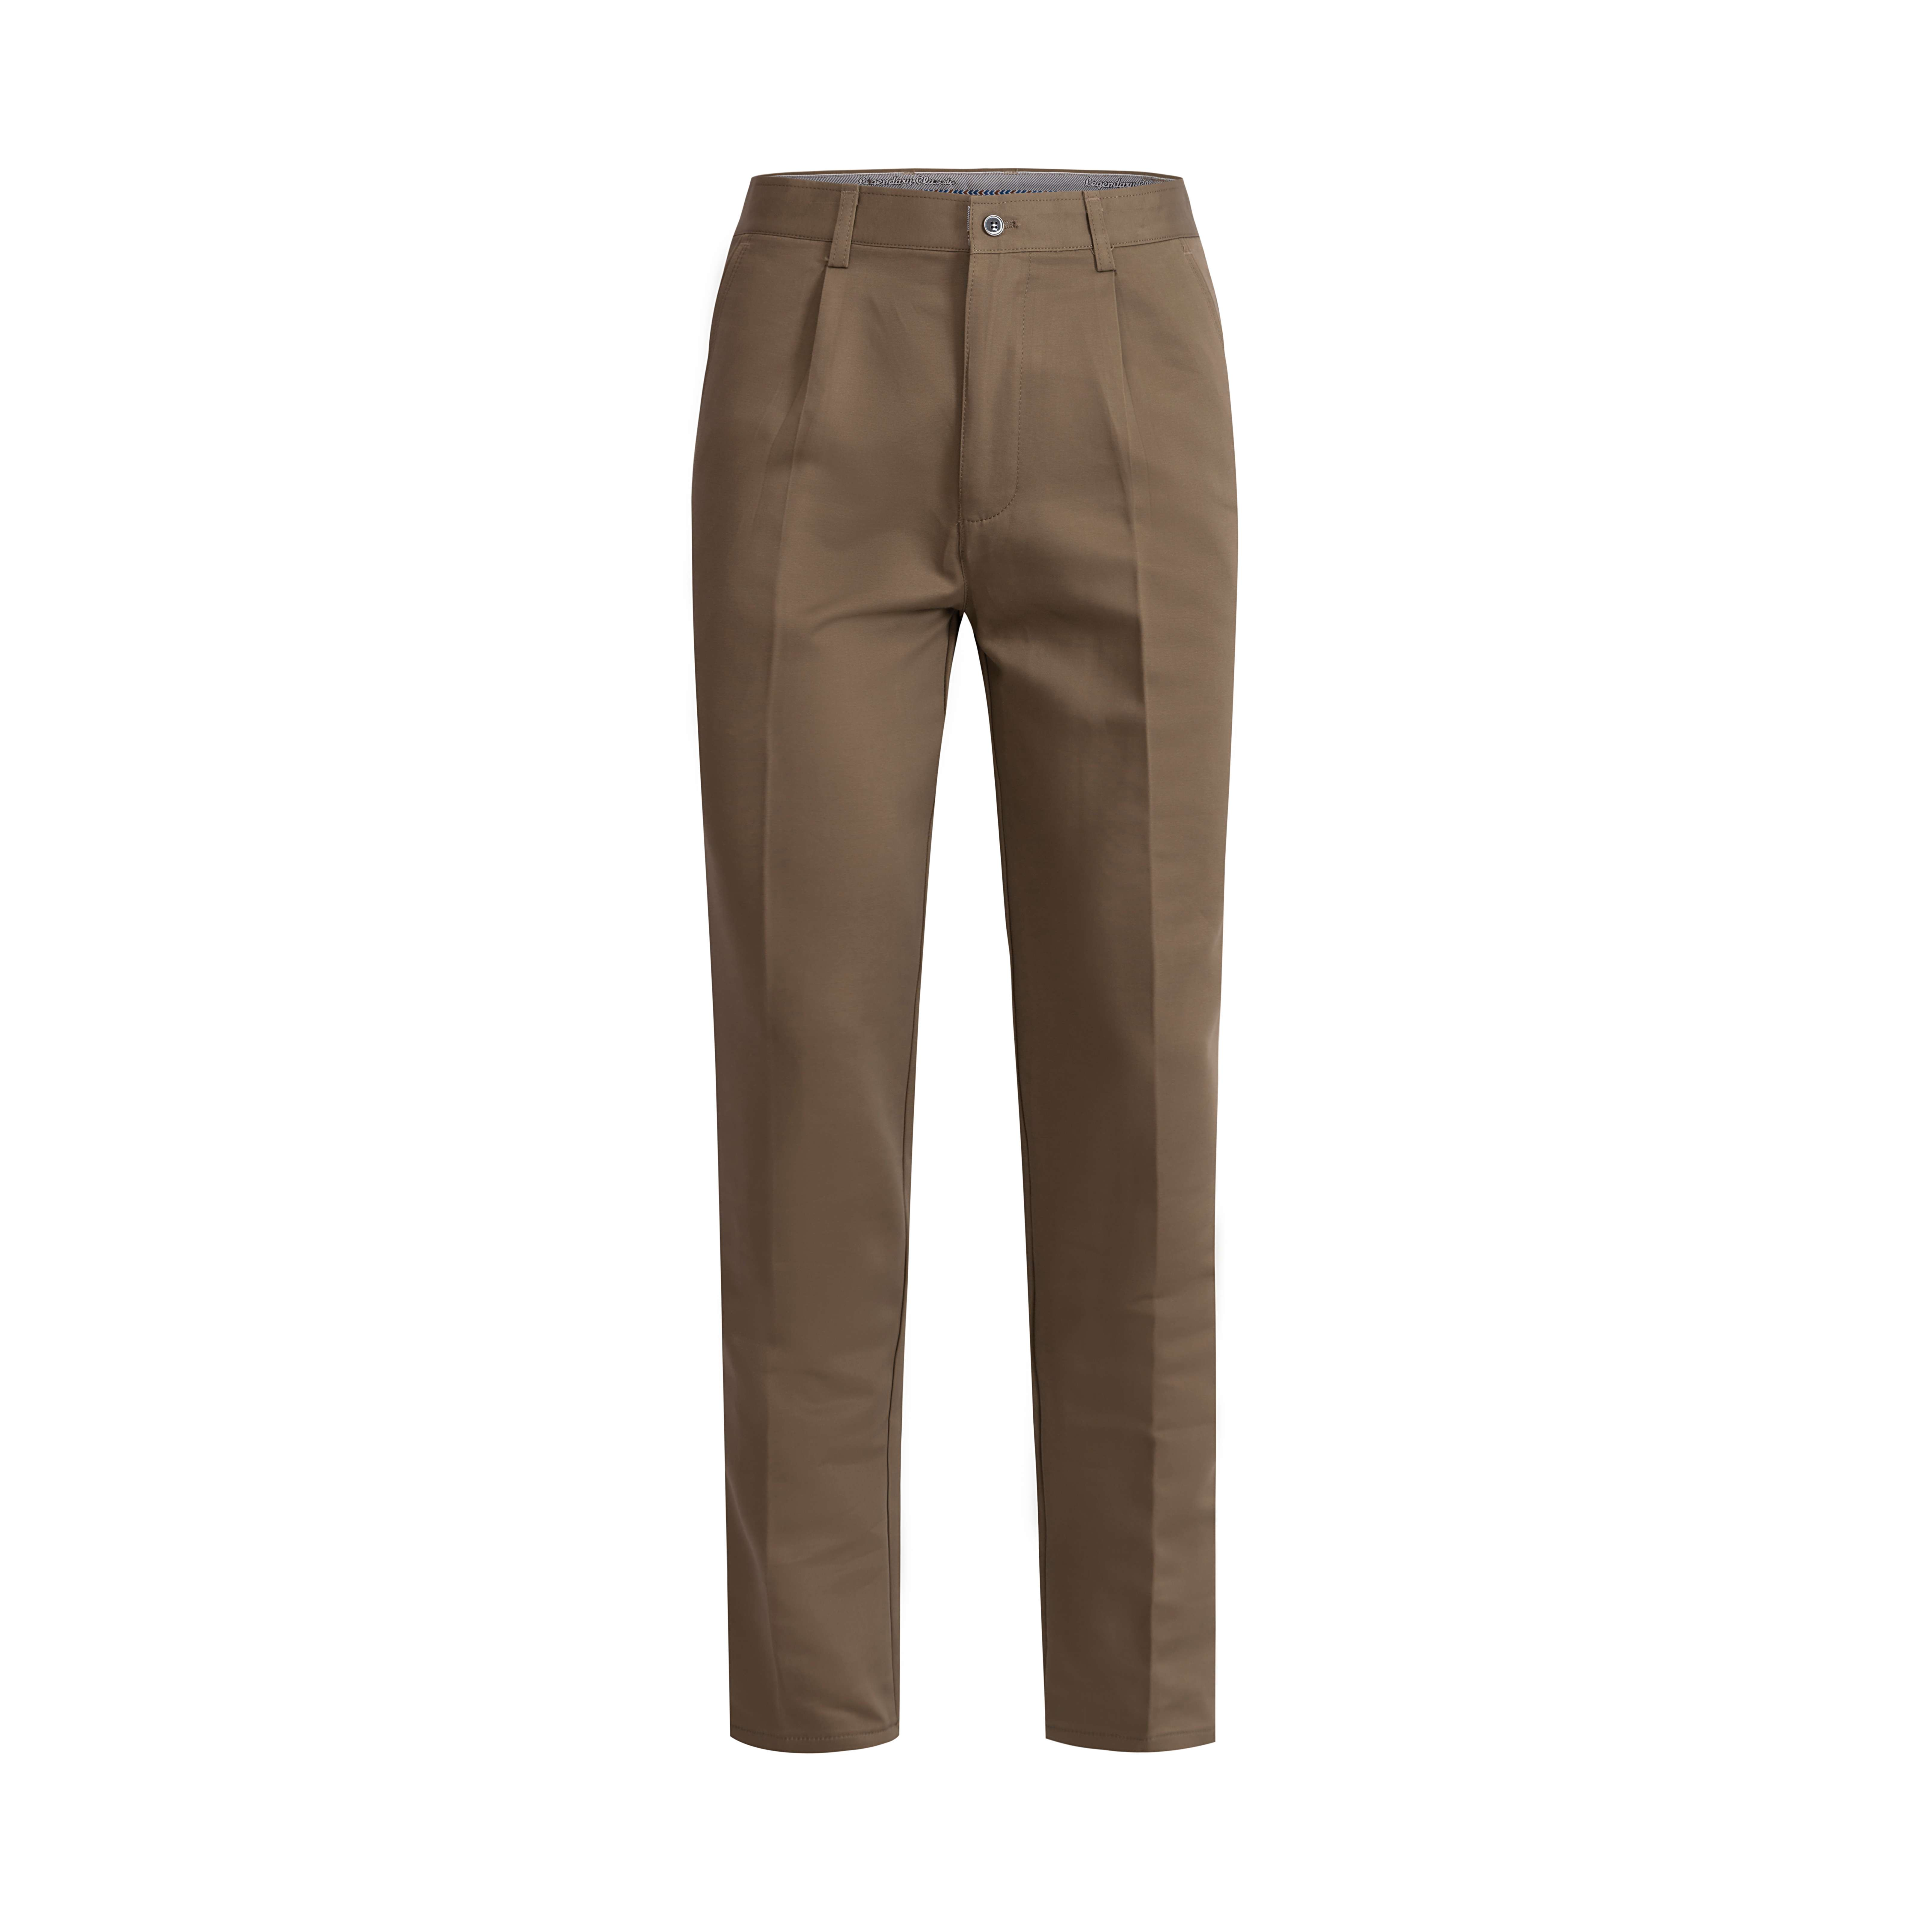 Men Khaki Pants